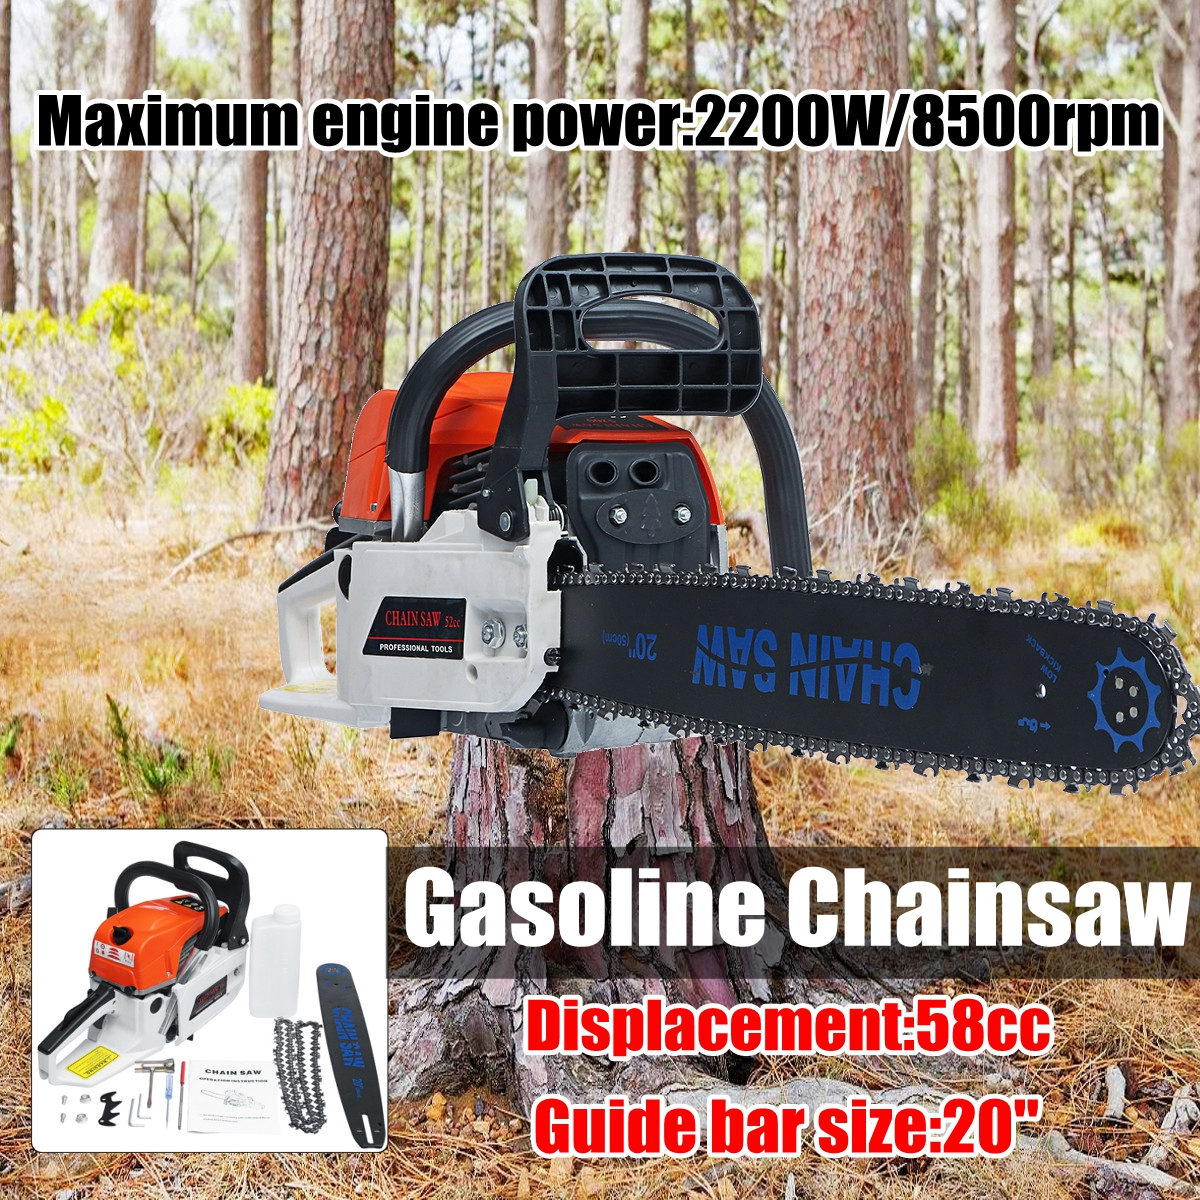 Professional 2200W 20'' Gasoline Chainsaw Machine Cutting Wood 58CC 8500rmp GAS China Saw wood cutter chain saw heavy duty gasoline chainsaw 2 stroke 58cc gas chain saw 3000rpm max 10000 rpm eu plug for garden tool